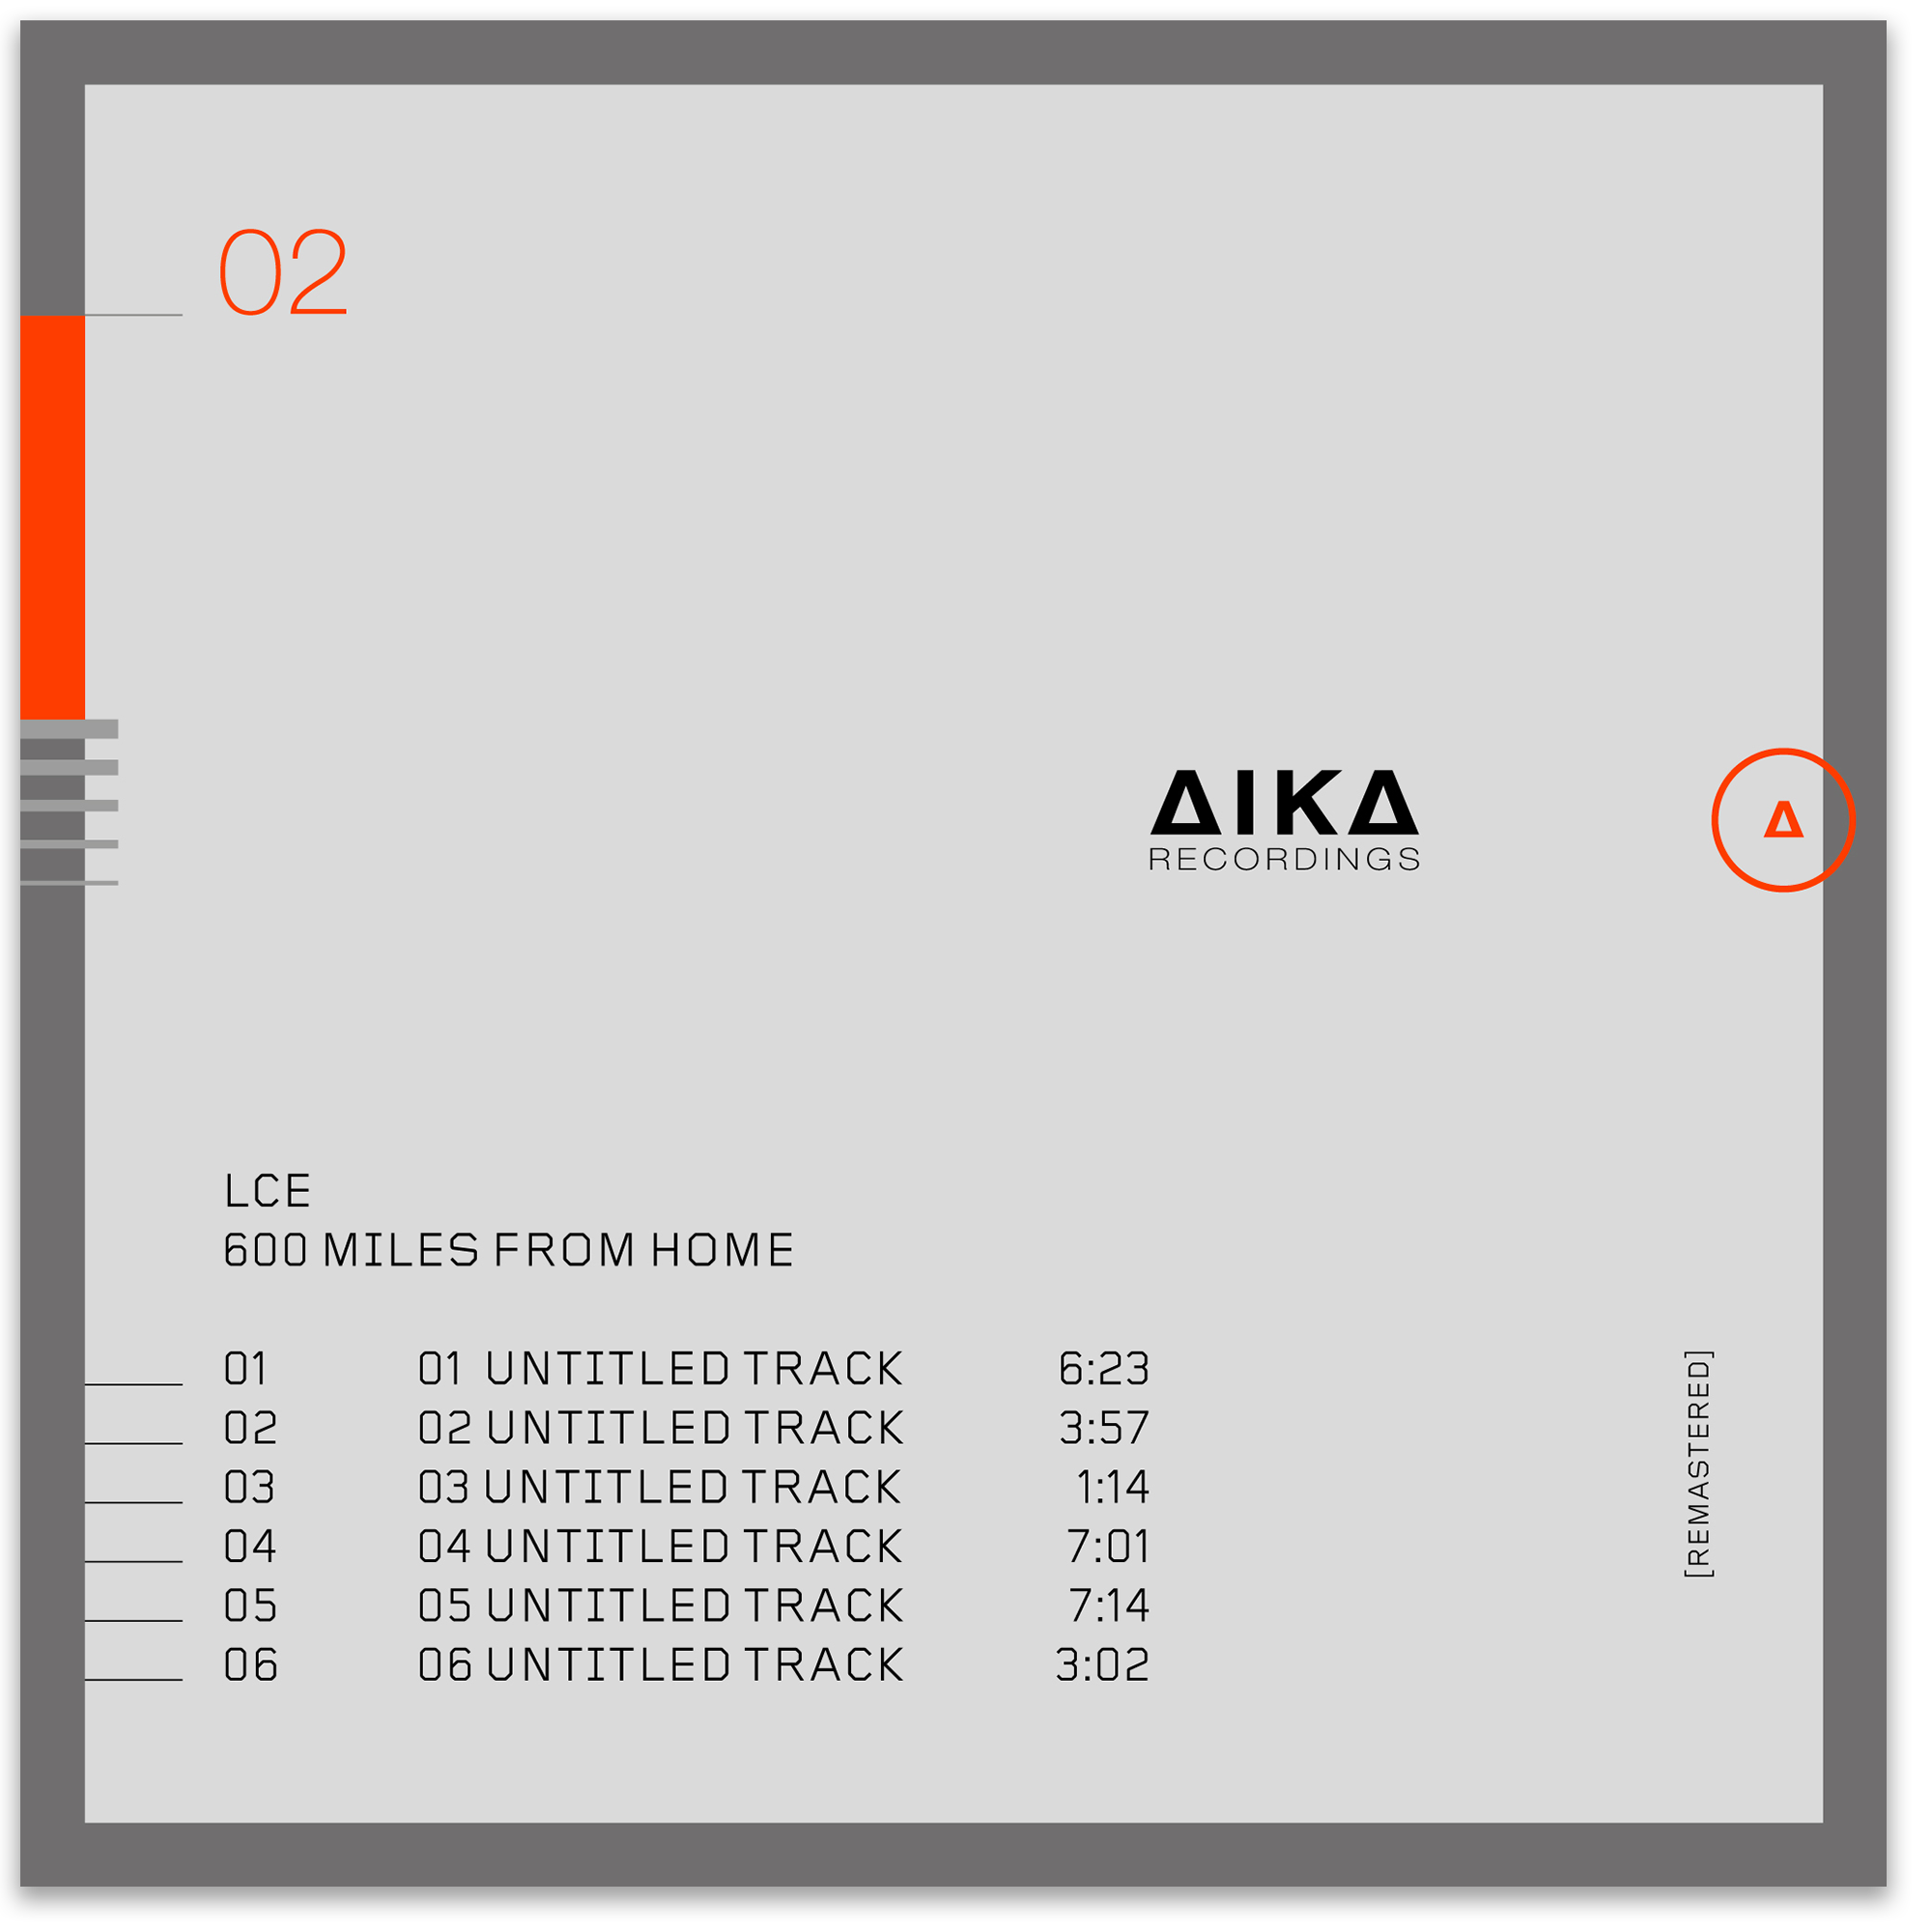 lce 600 miles from home aika recordings